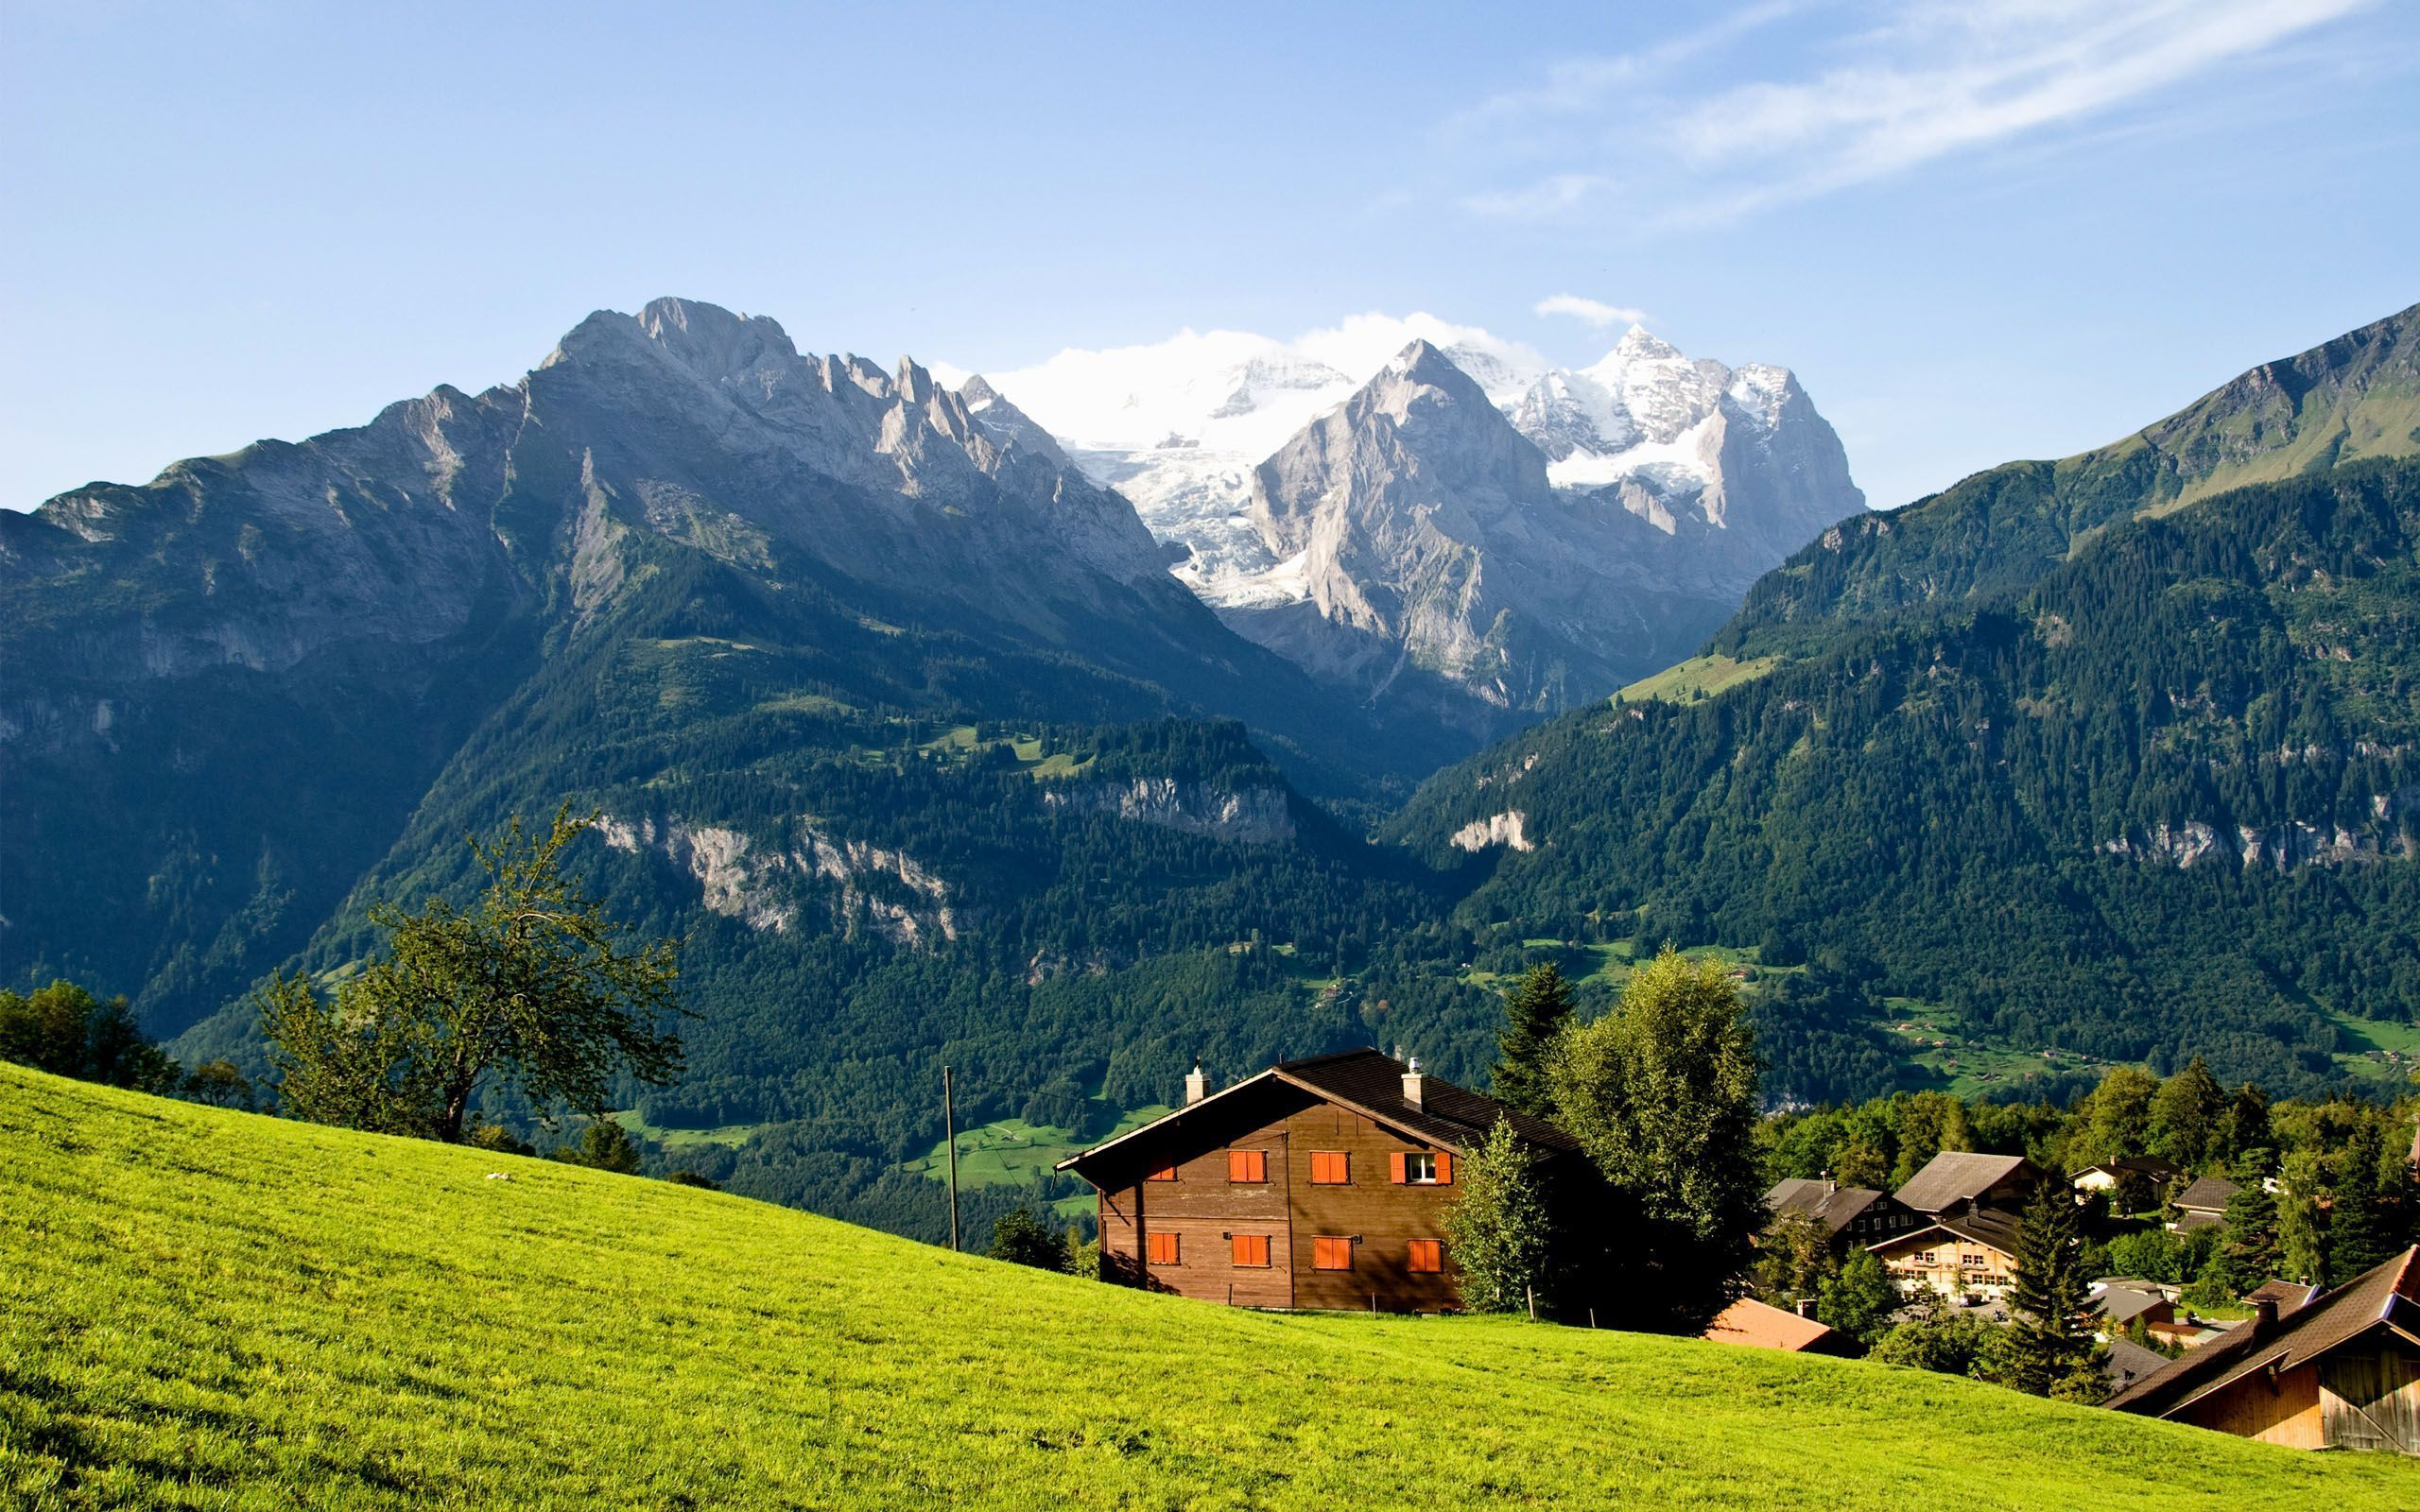 Switzerland hasliberg buildings houses mountains wallpaper for Homes in the mountains